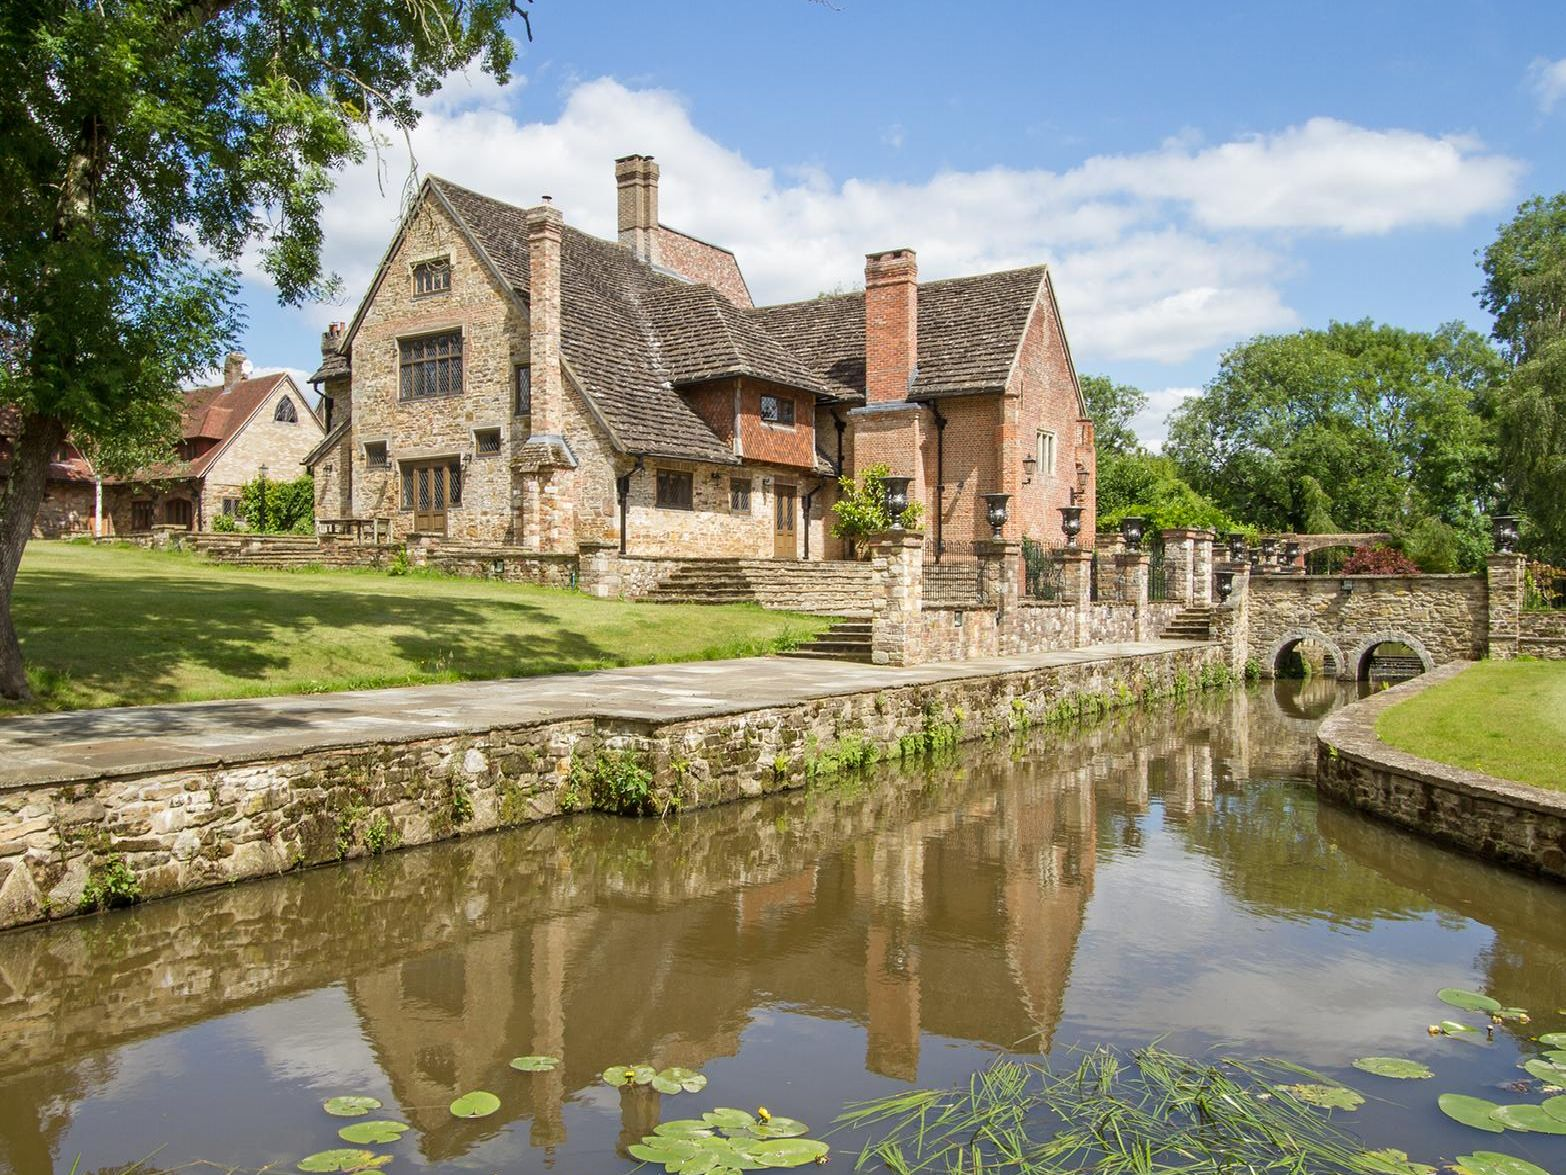 Chesworth House is still up for sale